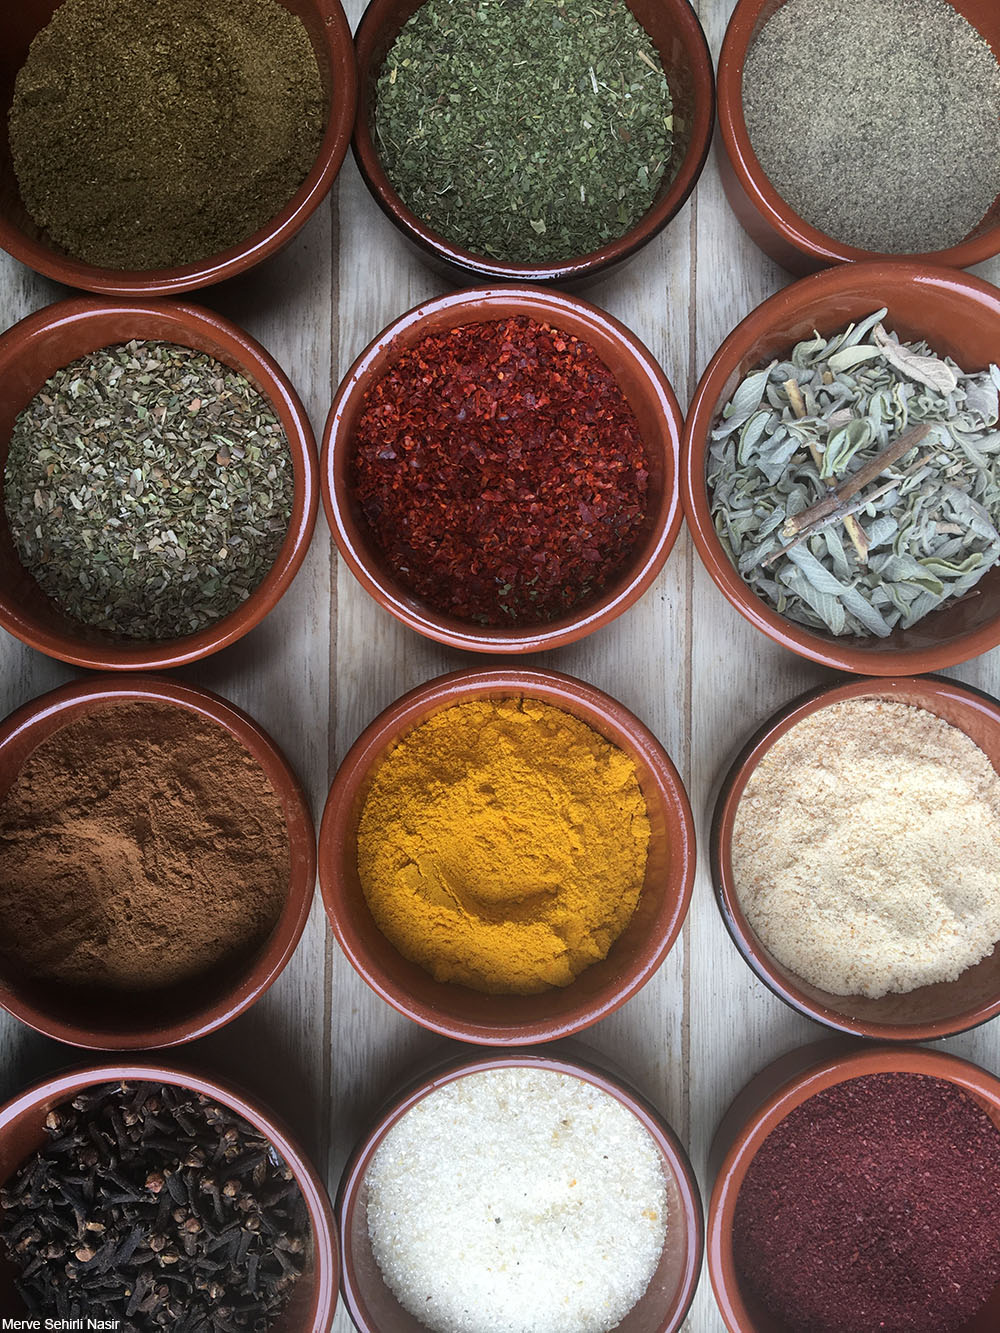 selection of spices in small bowls